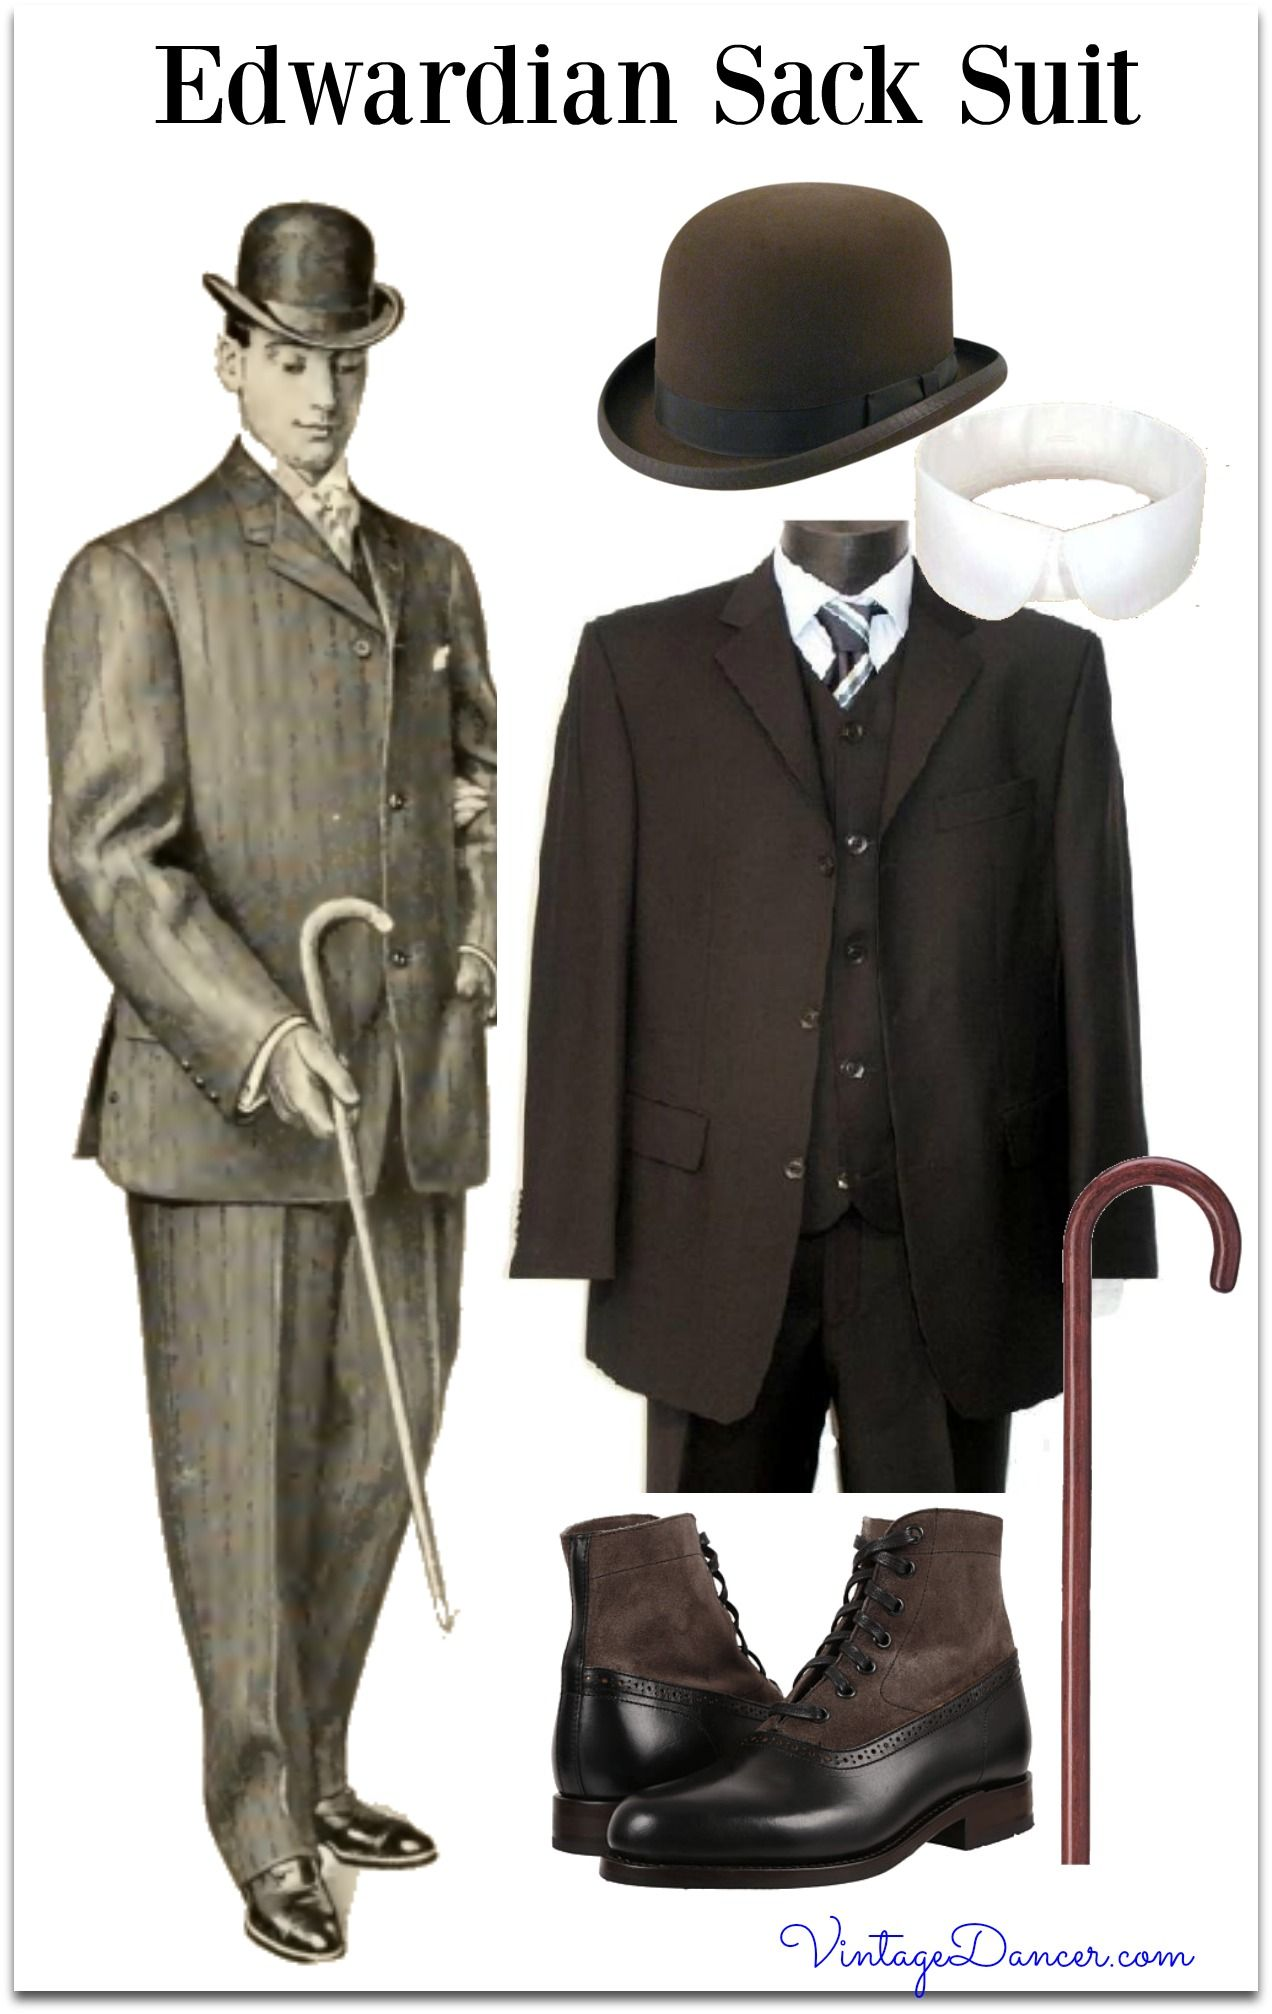 fe29ec04996 5 men s Edwardian era clothing and costume ideas  From morning suits to  sack suits